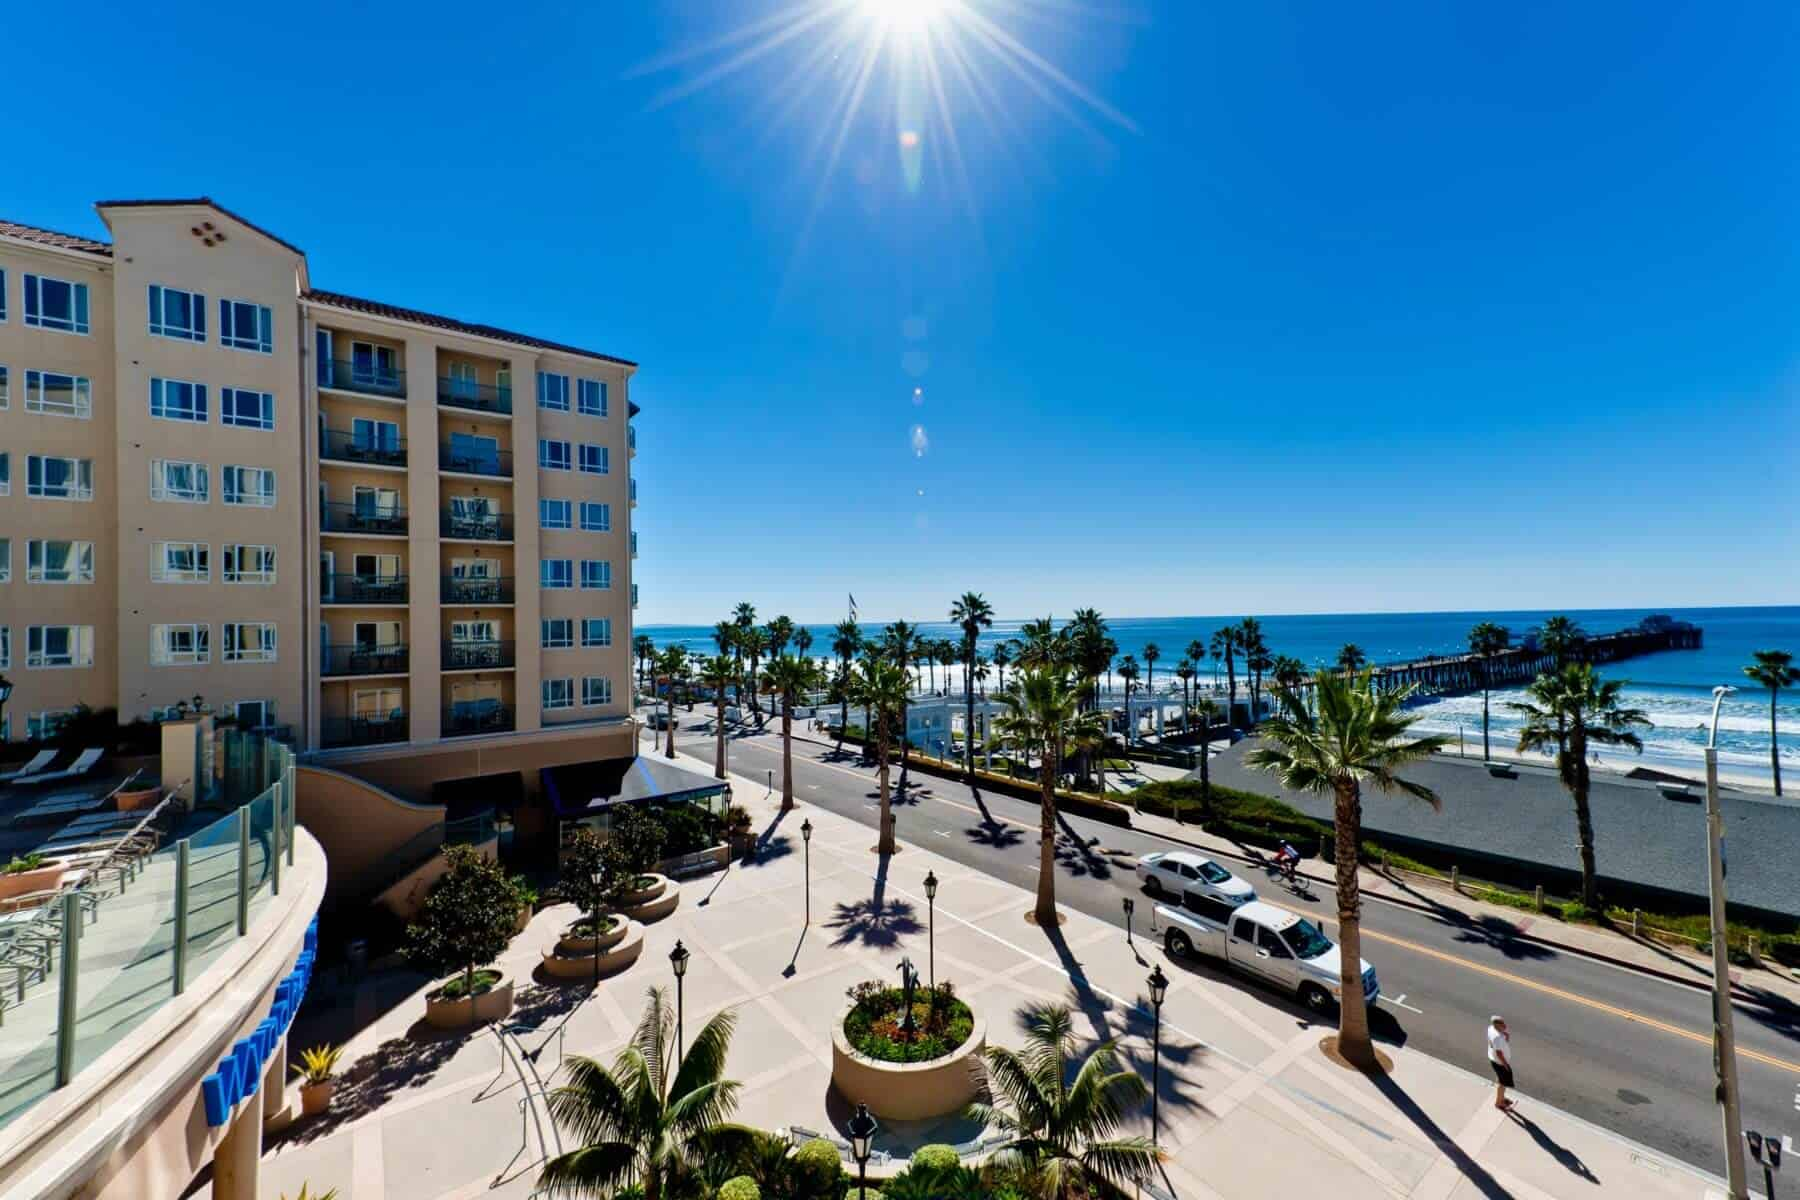 Wyndham oceanside pier resort visit oceanside for The wyndham